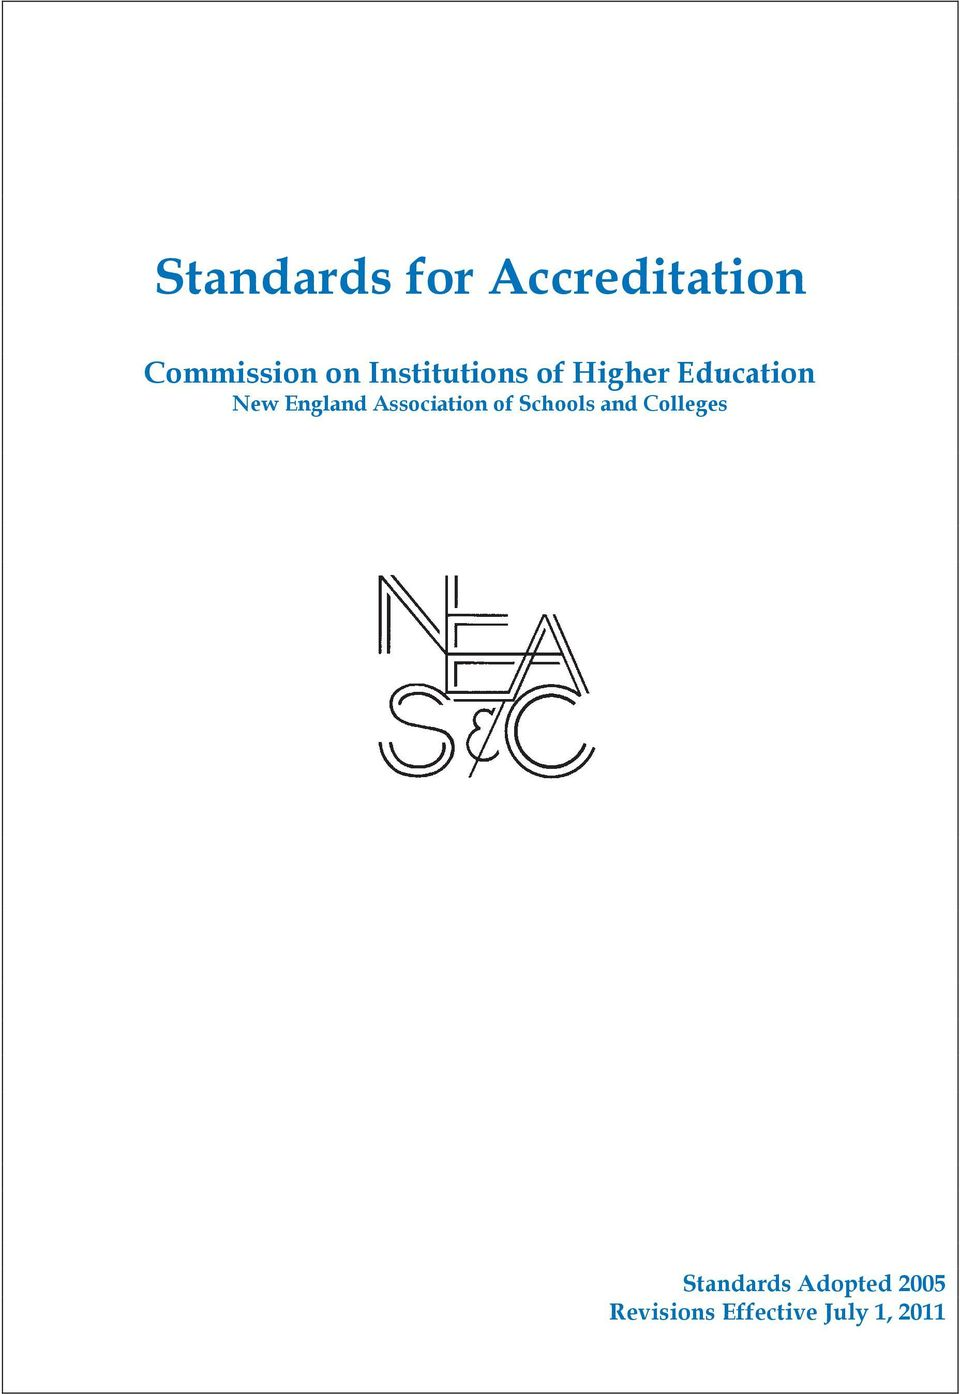 Association of Schools and Colleges